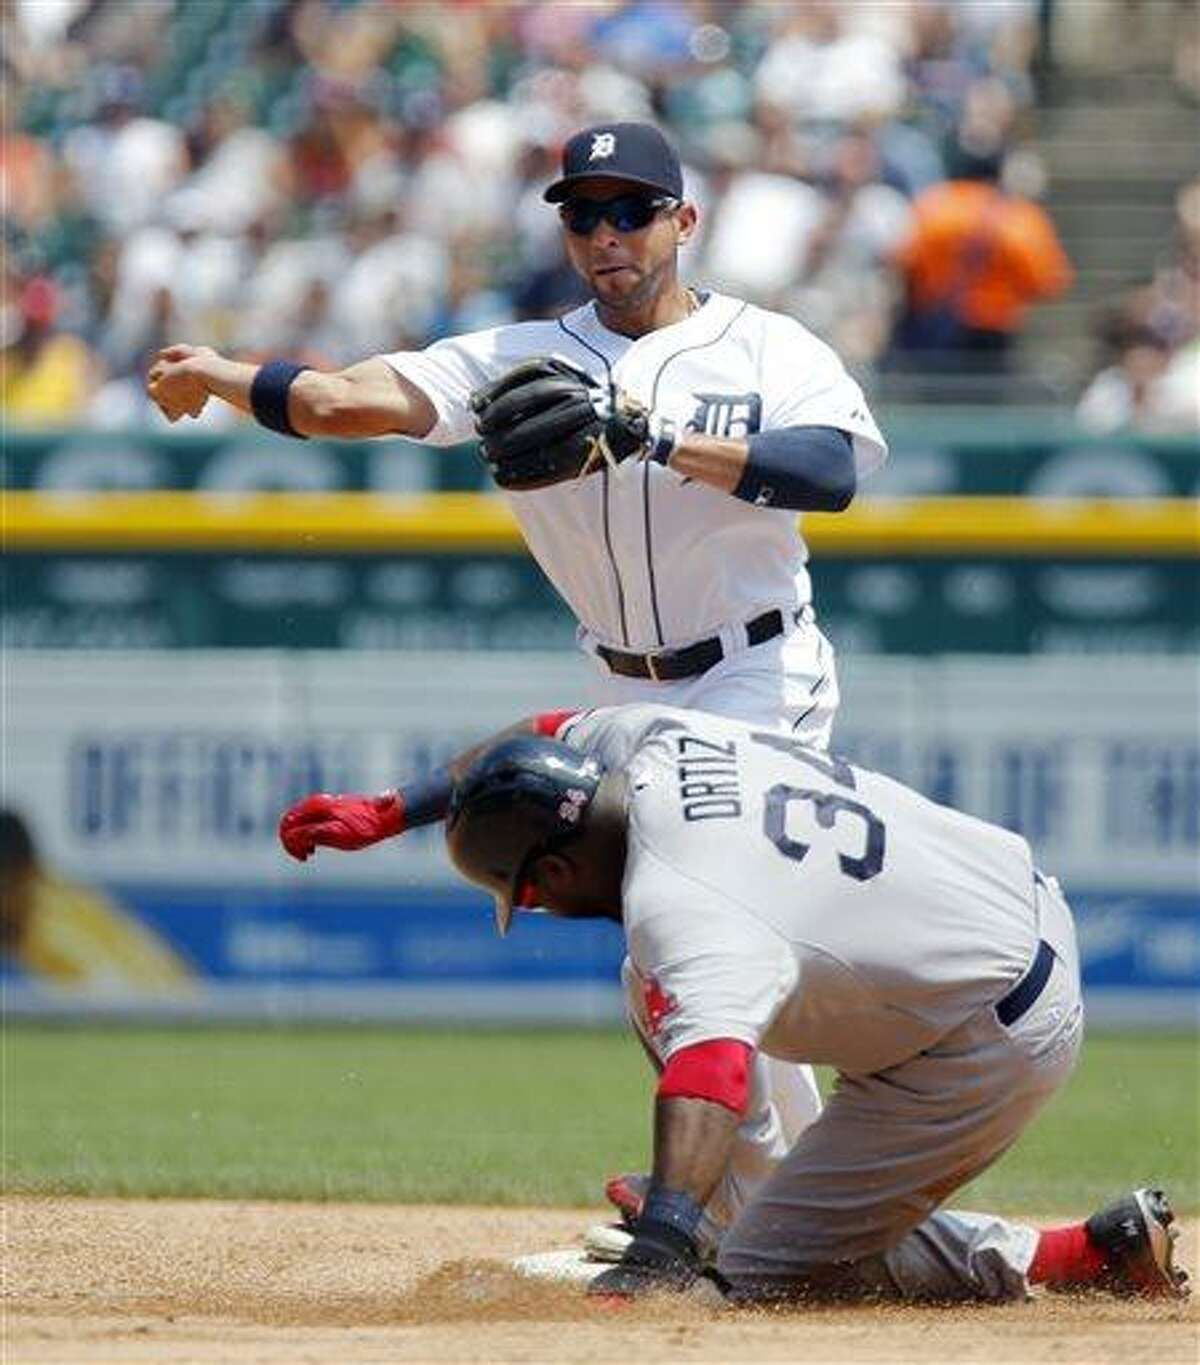 Detroit Tigers second baseman Omar Infante, top, turns the ball after getting a force-out on Boston Red Sox's David Ortiz (34) in the third inning of a baseball game on Sunday, June 23, 2013, in Detroit. Infante's throw was wild to first base and Red Sox's Mike Napoli was safe on the play. (AP Photo/Duane Burleson)